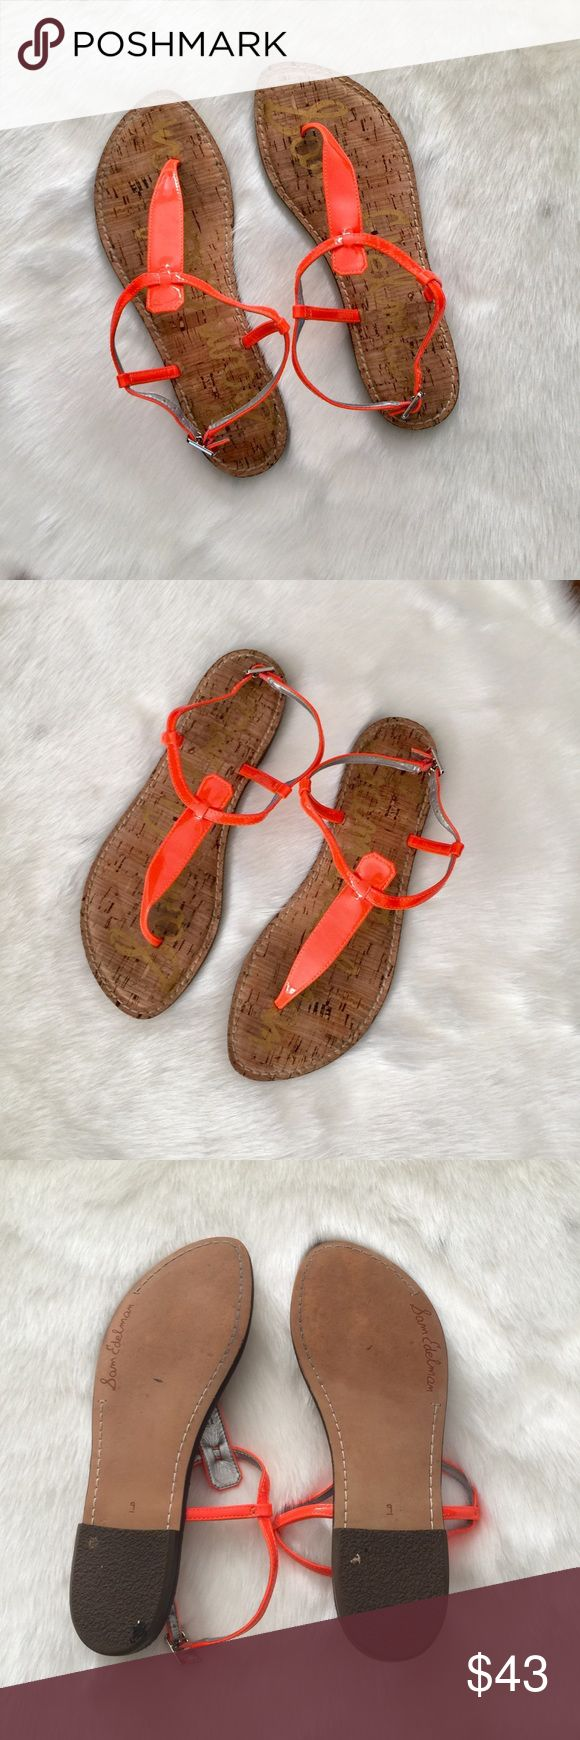 SAM EDELMAN • Gigi Sandals SAM EDELMAN • Gigi Sandals blood orange leather upper throng sandals with adjustable ankle straps, signature padded socks. Buckle closure. Size 9M EUR 39. Normal wear but overall great used condition. See pictures Length a little over 10 inches Sam Edelman Shoes Sandals